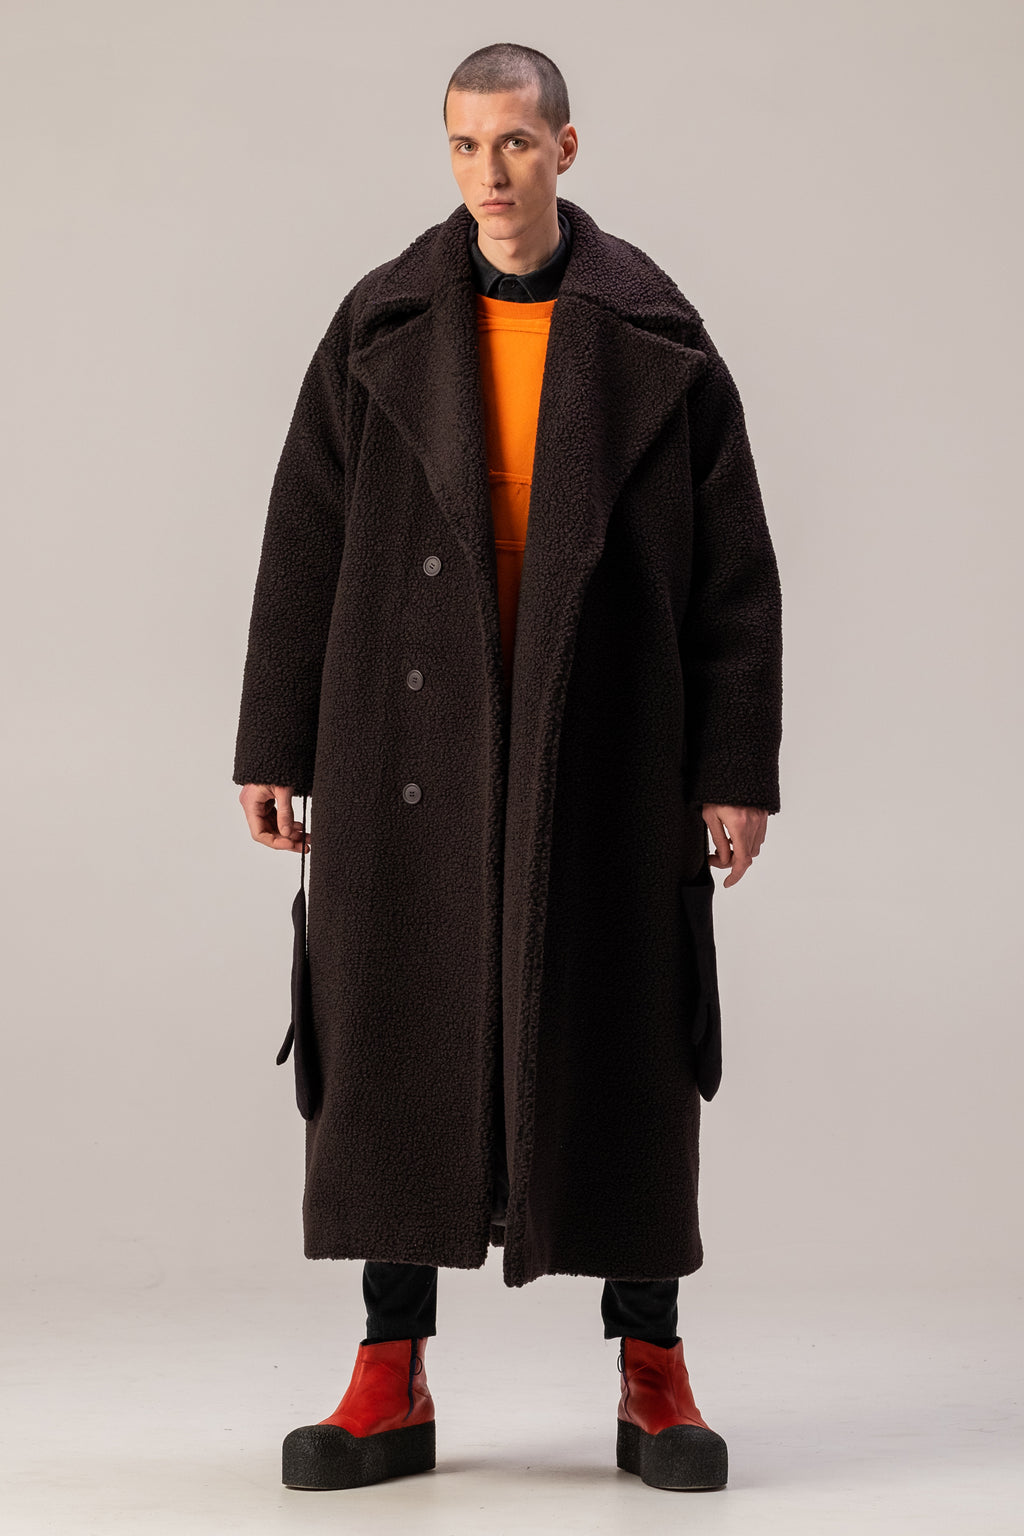 CITY MONK coat